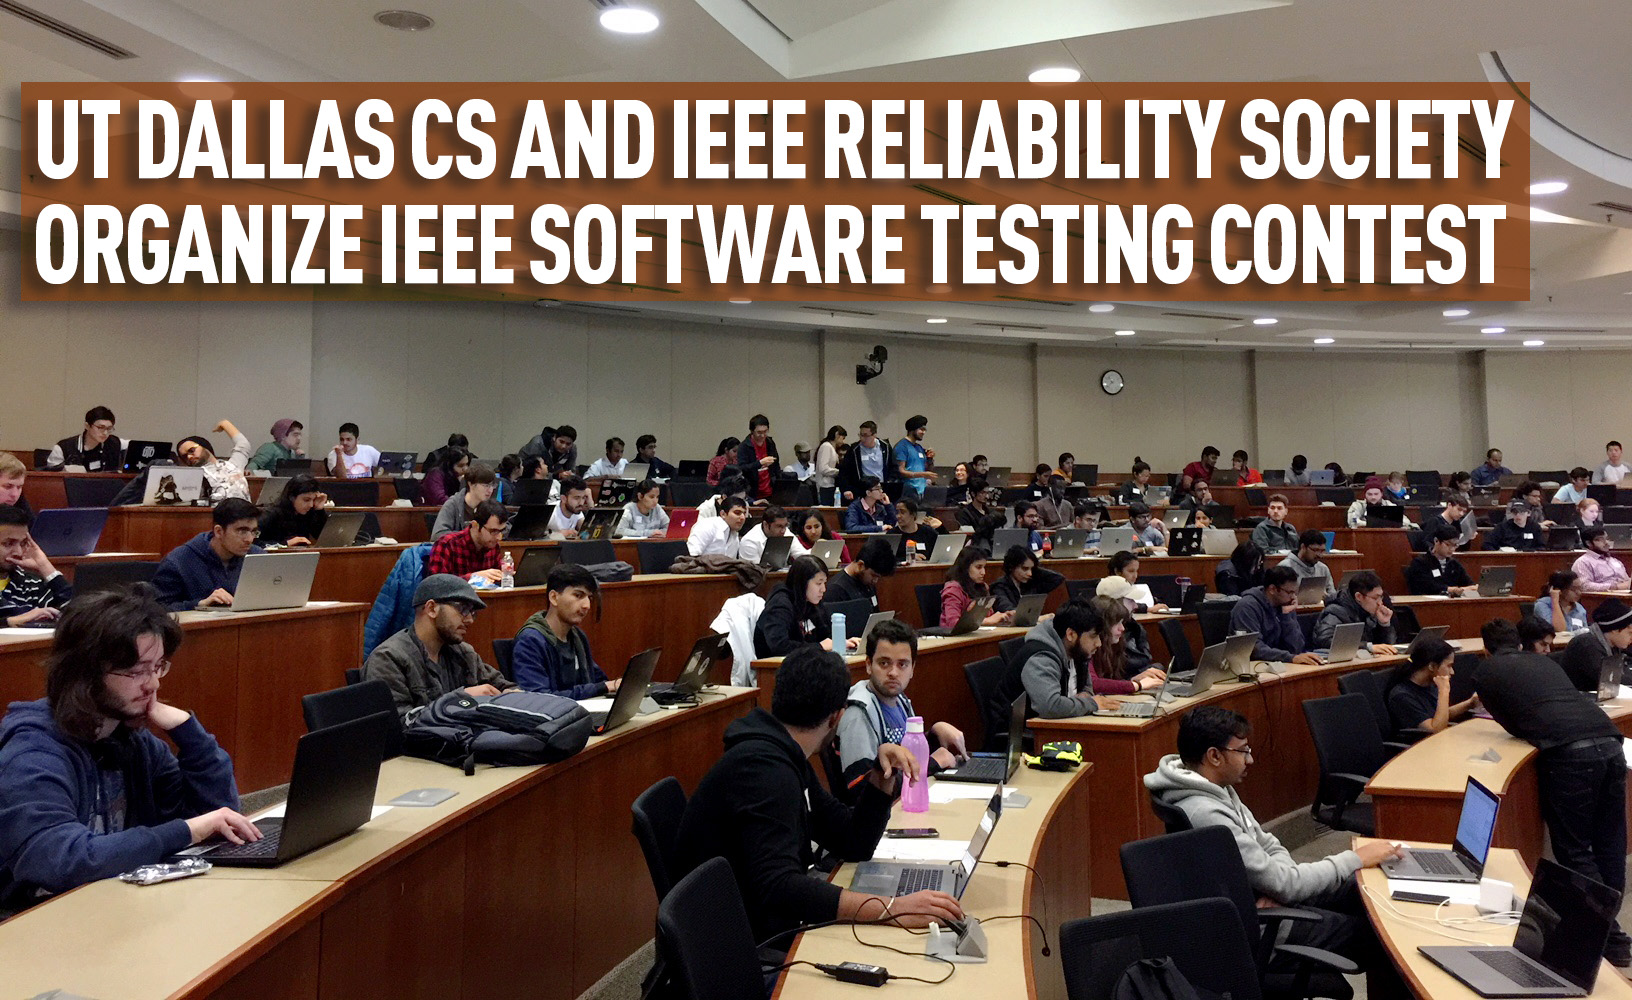 UT Dallas CS and IEEE Reliability Society Organize IEEE Software Testing Contest